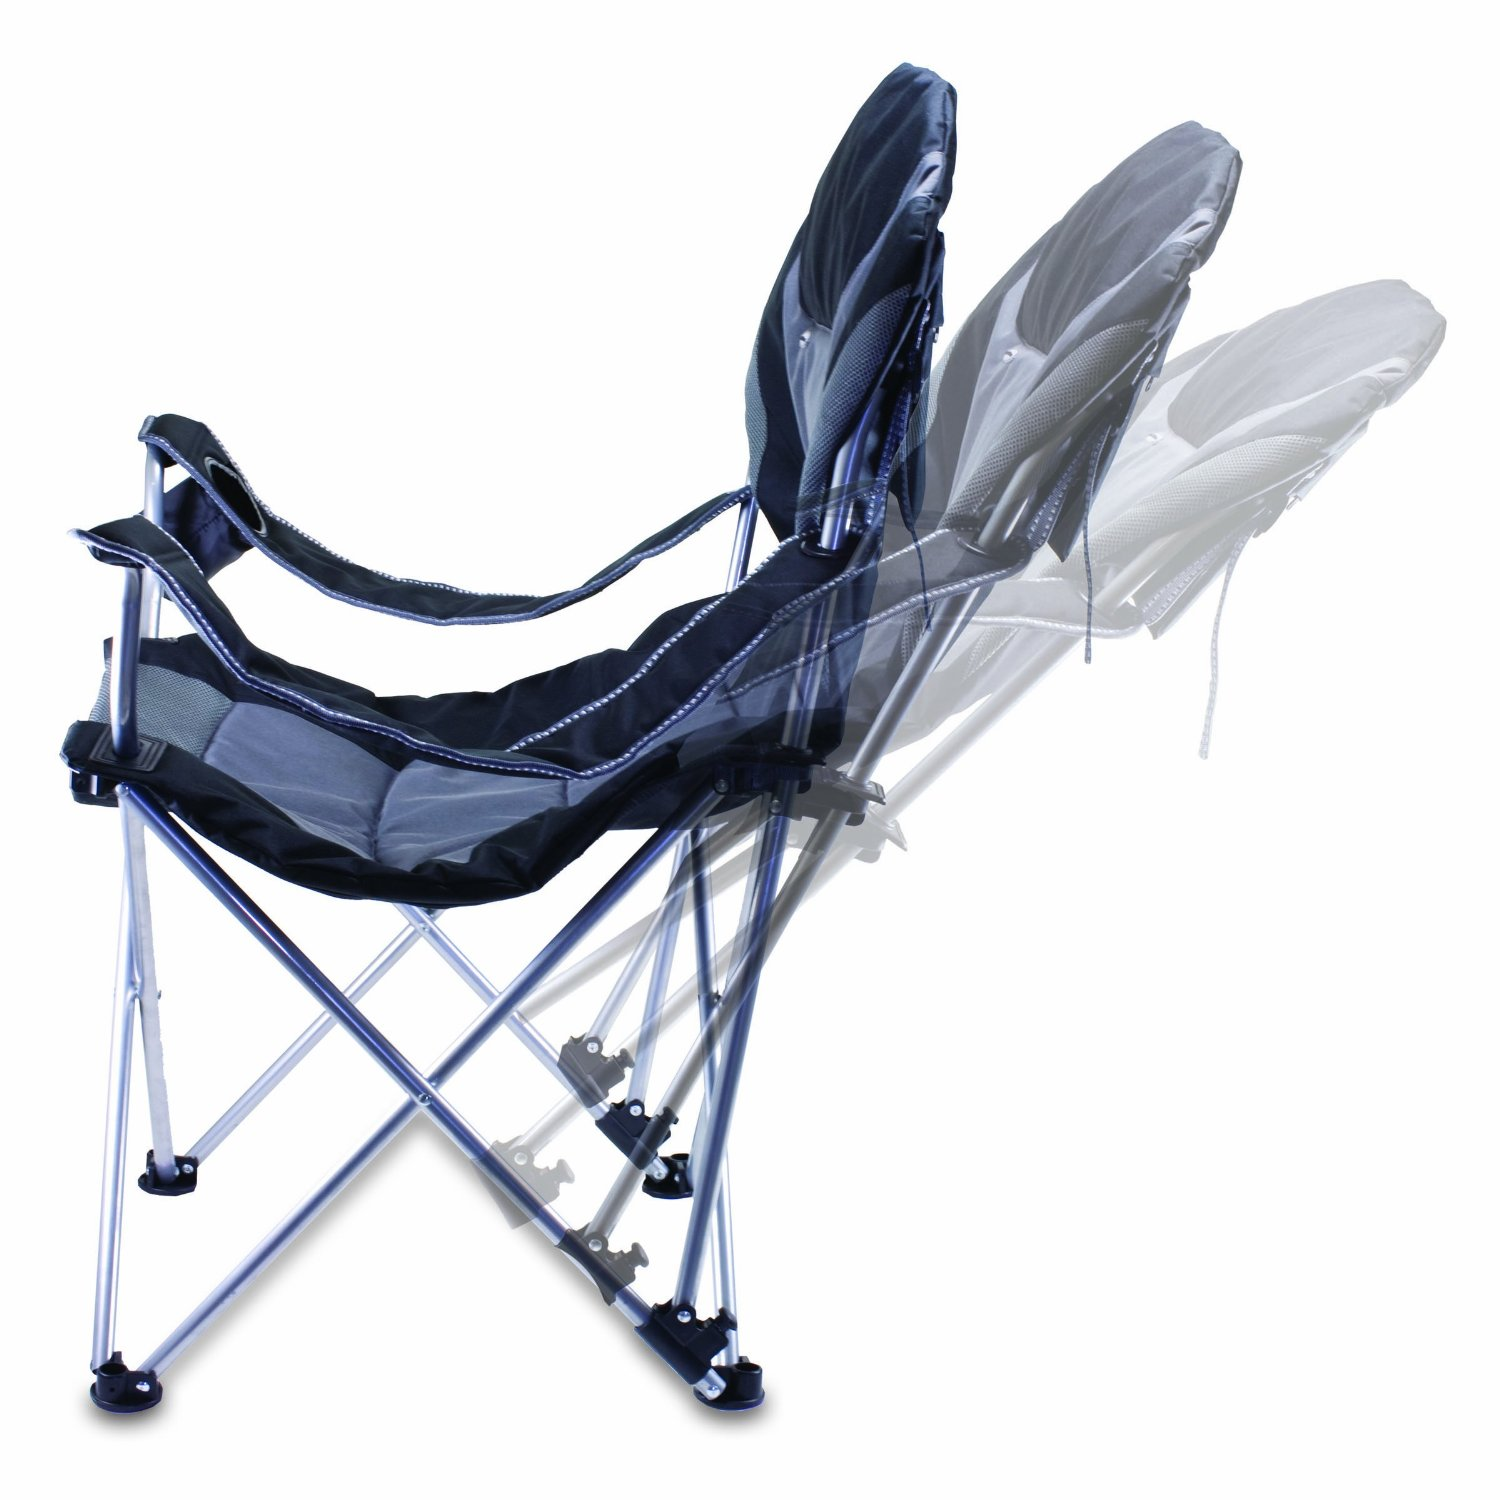 Top 5 Best Tailgate Chairs For The Tailgate Party TAILGATE PARTY